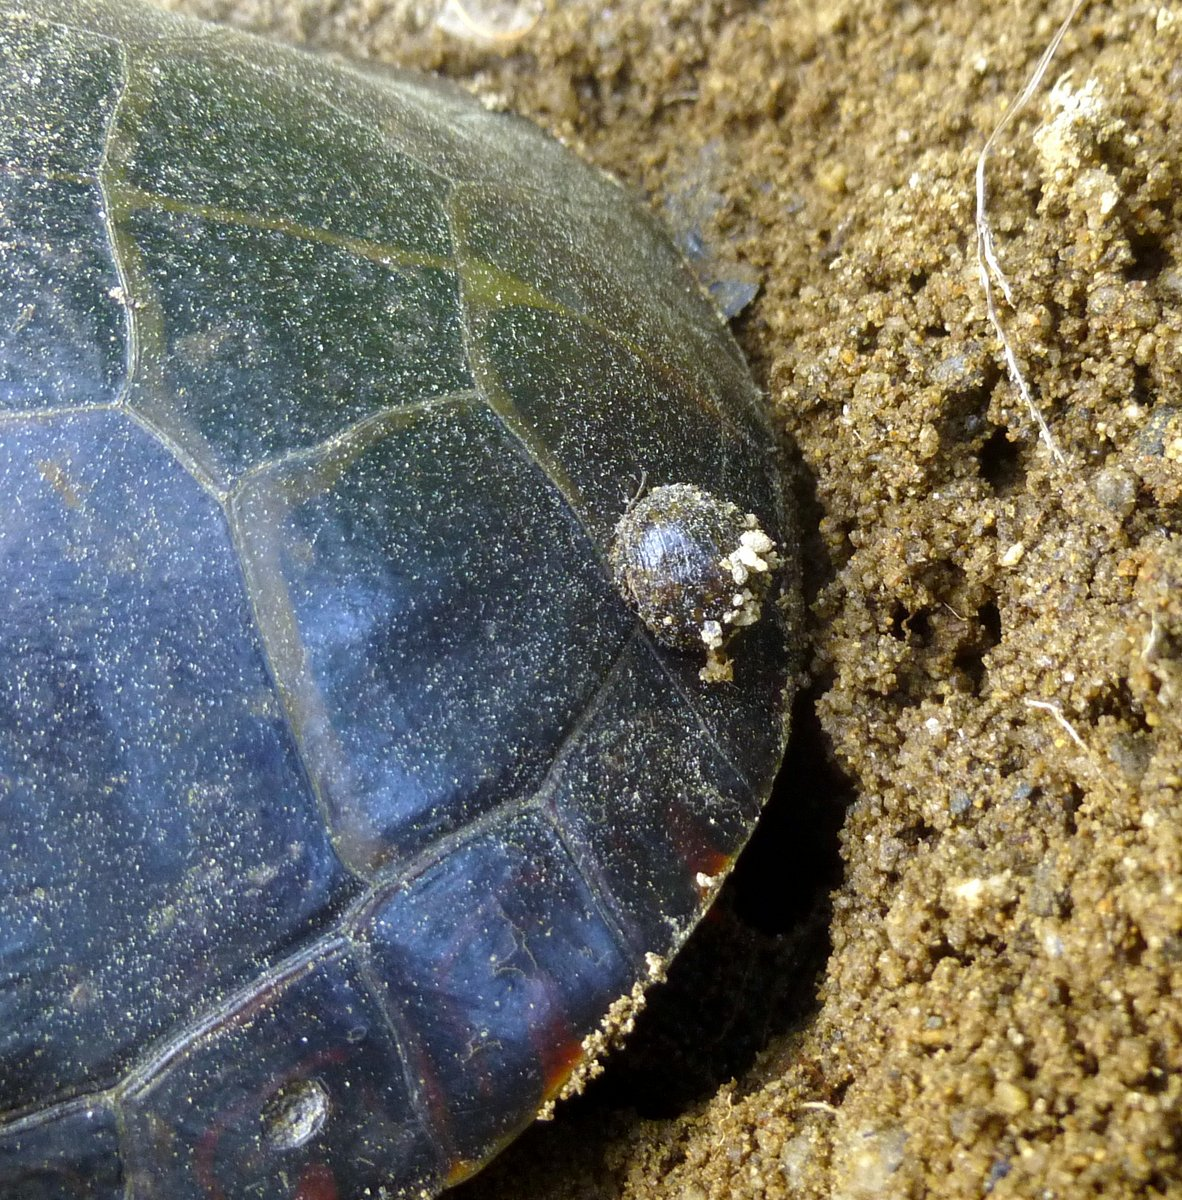 11. Turtle Shell Growth